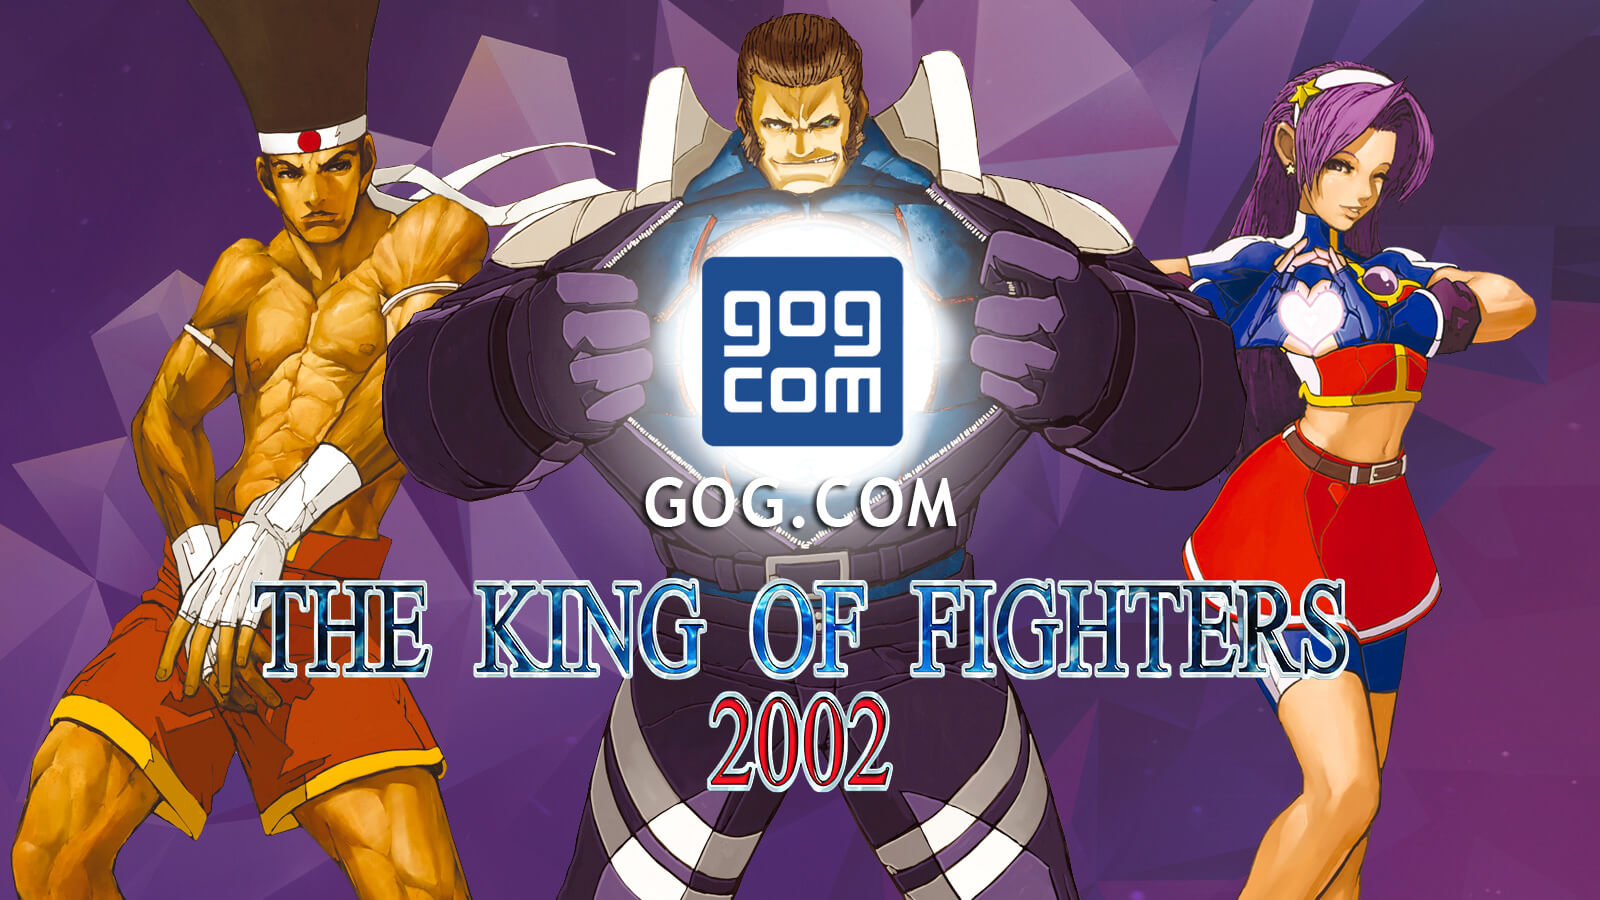 The King Of Fighters 2002 Free On Gog Gameslaught